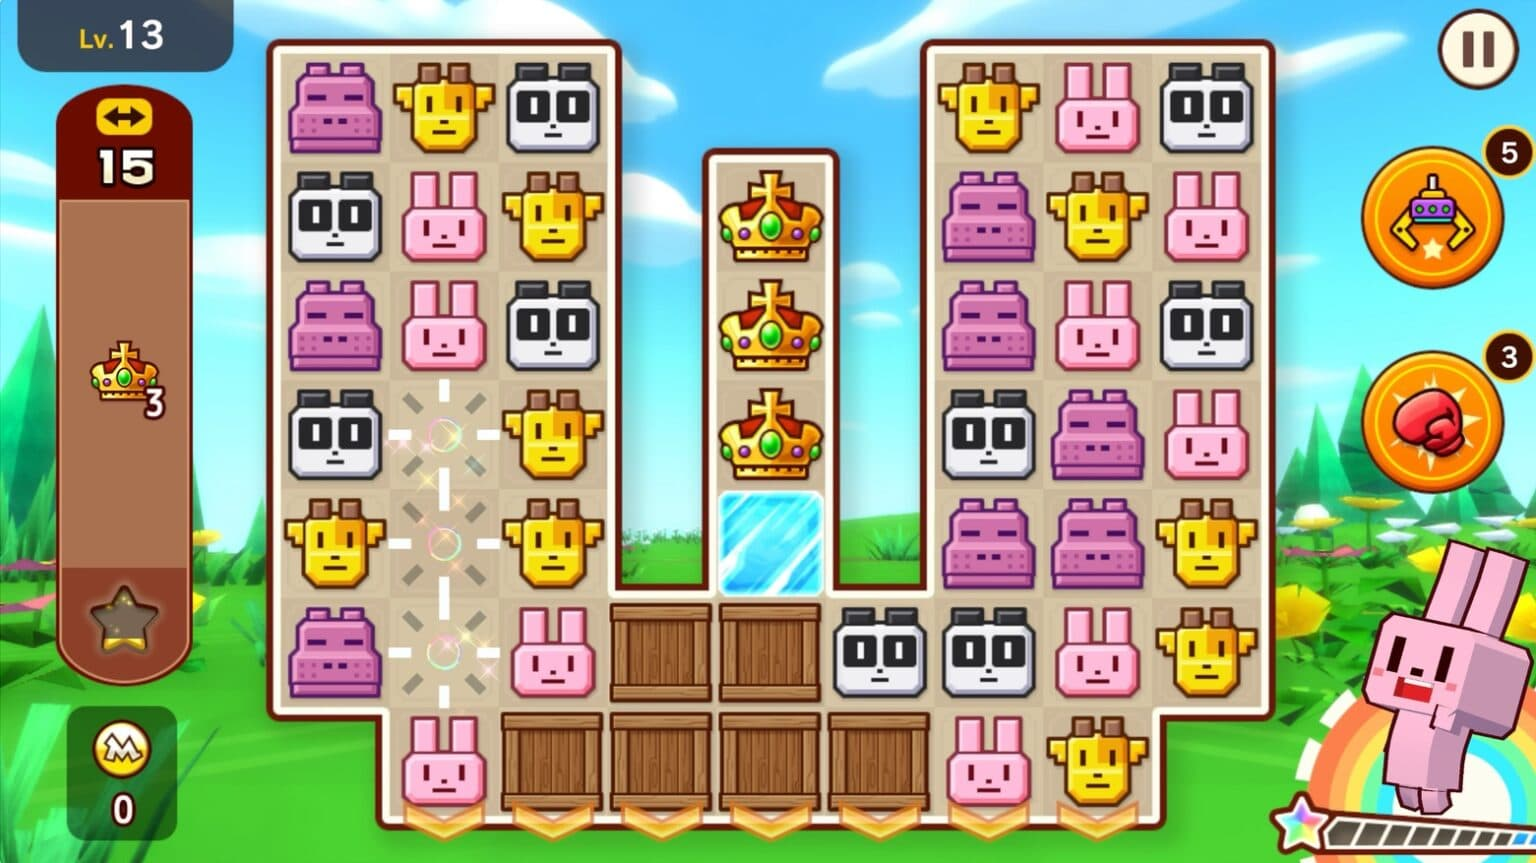 Solve puzzles, collect cute animals in 'Zookkeeper World' on Apple Arcade